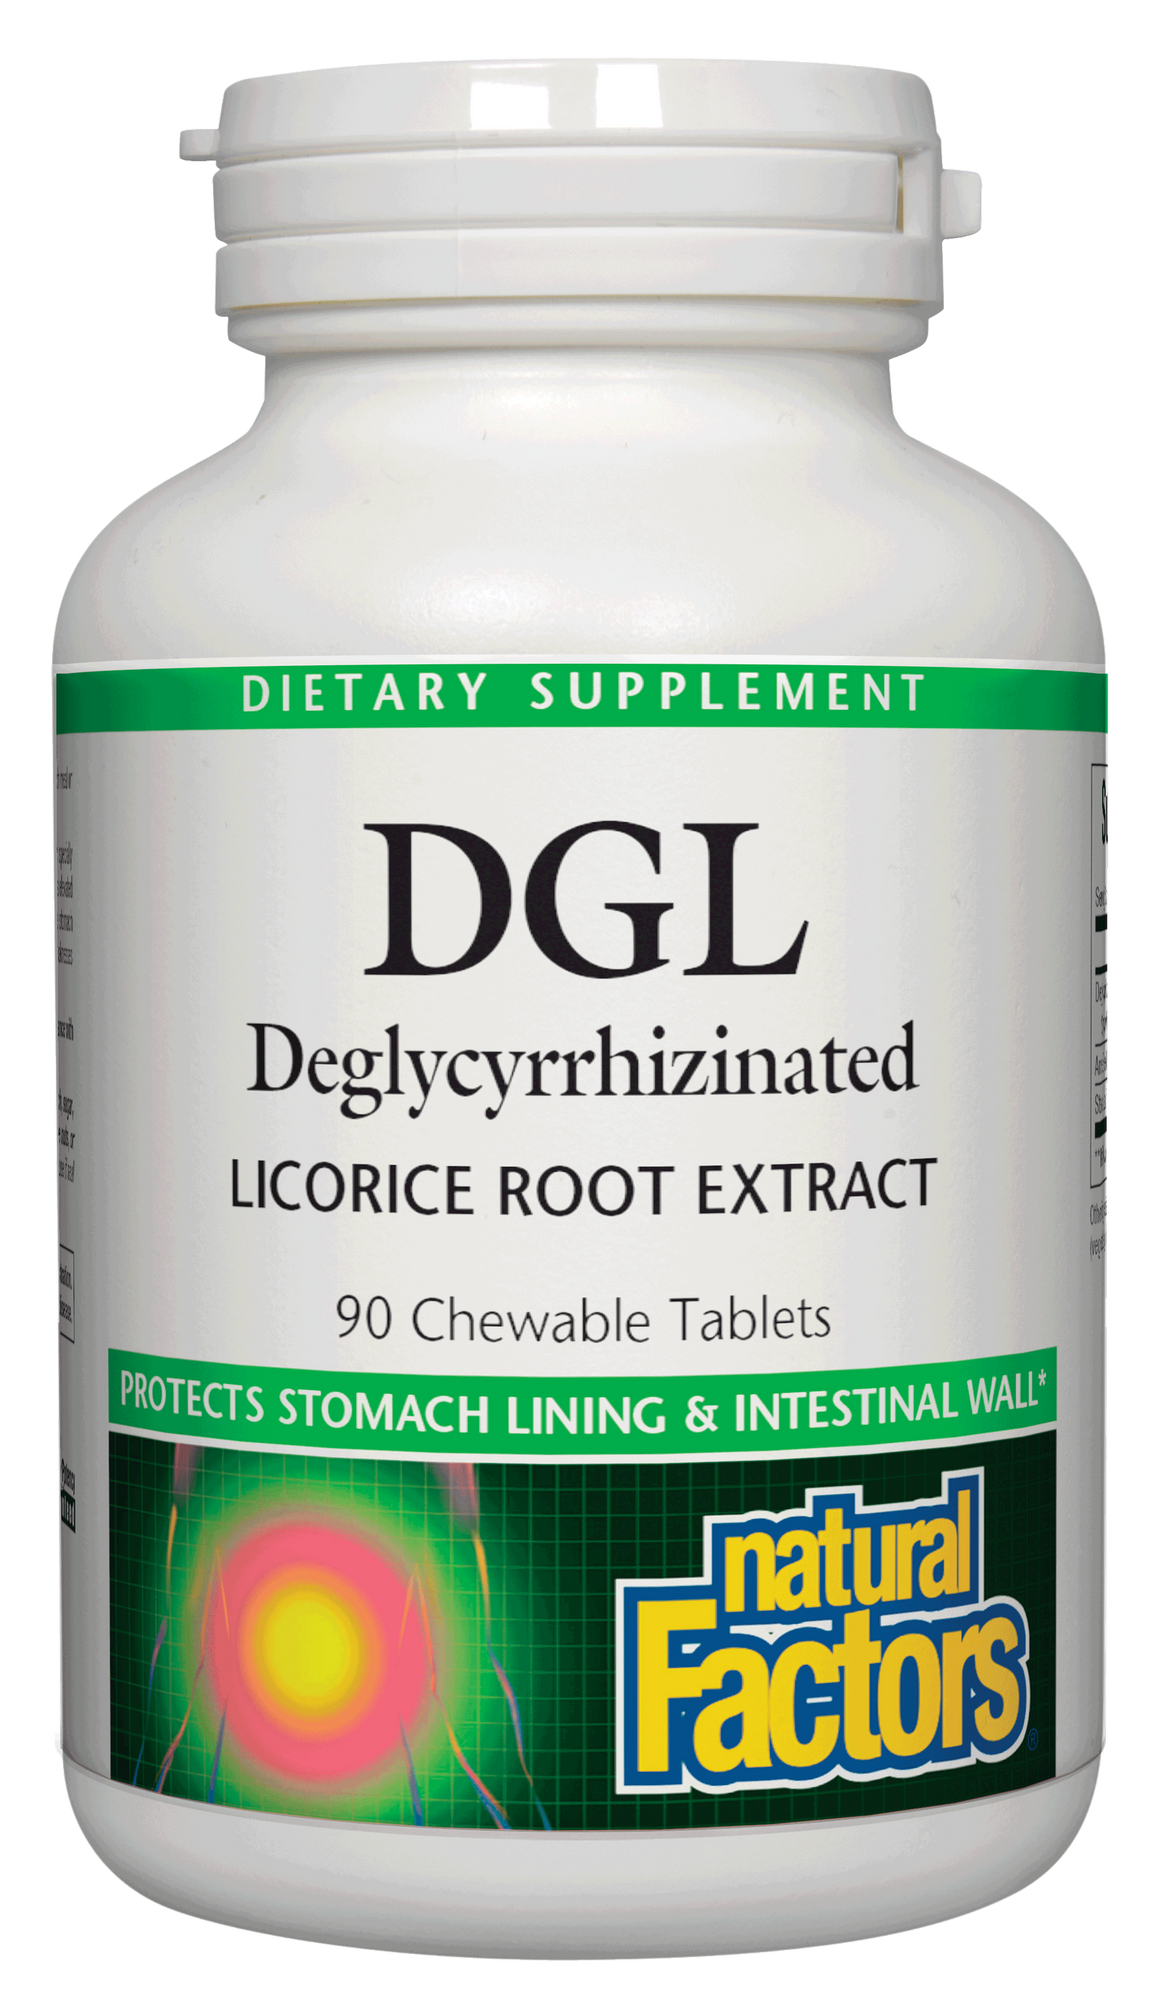 A bottle of Natural Factors DGL 400 mg · Deglycyrrhizinated Licorice Root Extract